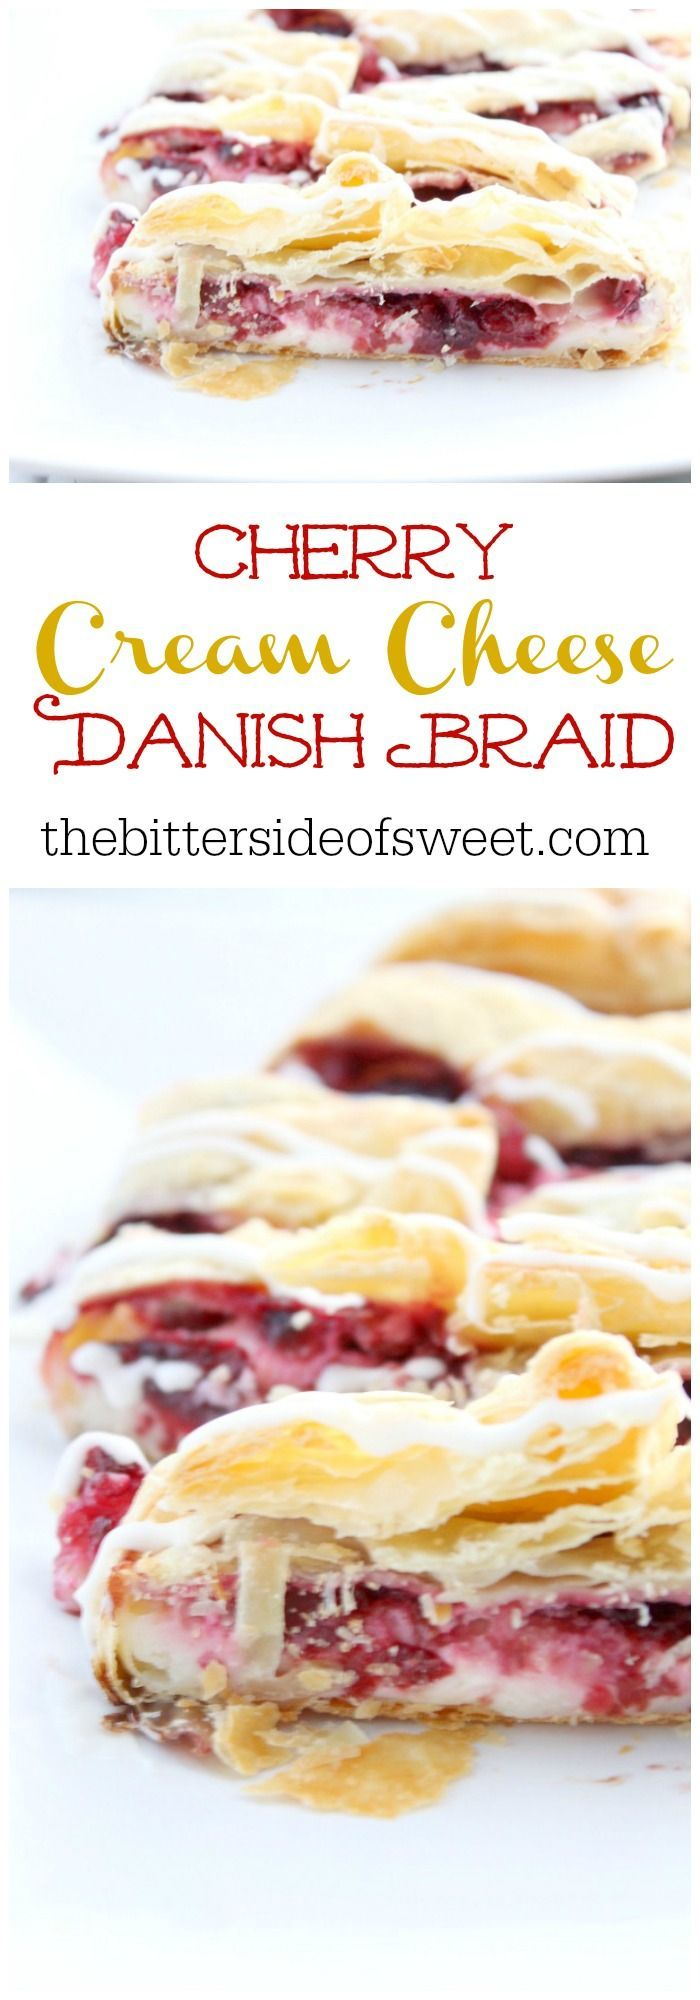 This Cherry Cream Cheese Danish Braid couldn't be easier. Just a few ingredients and you'll have a freshly baked Danish for brunch!